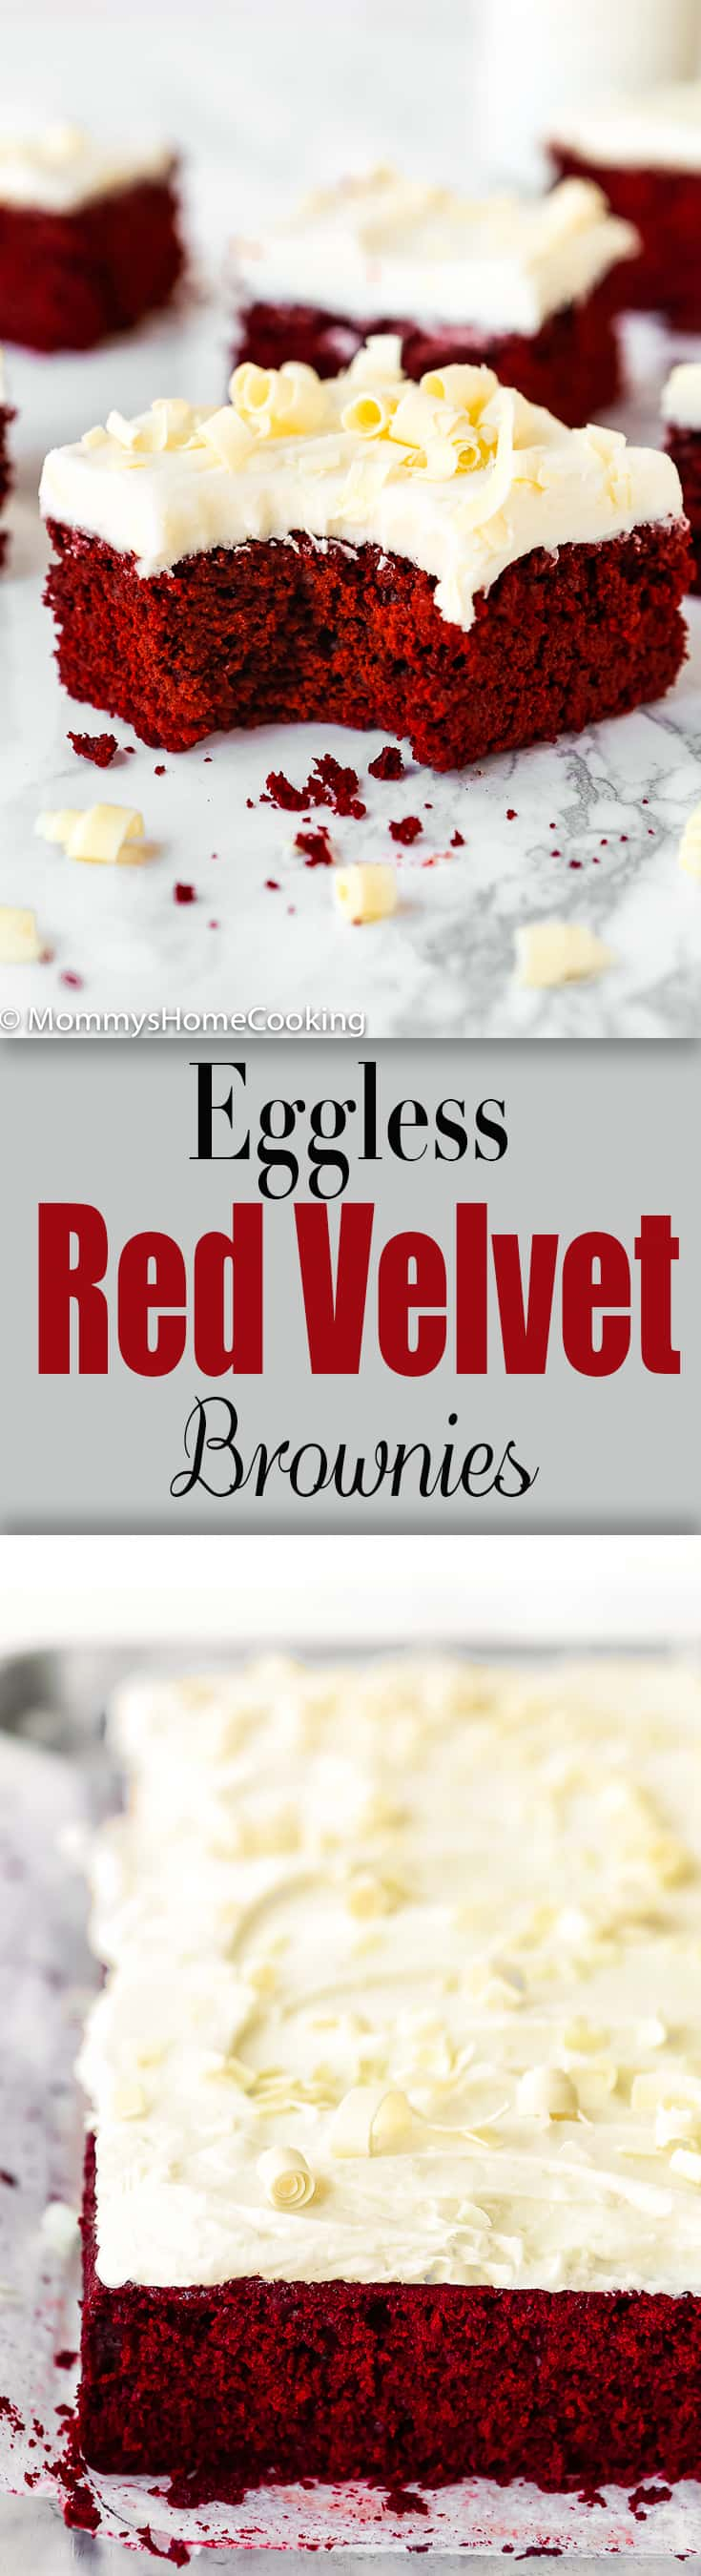 These showstopper Eggless Red Velvet Brownies are the perfect excuse to indulge! Über-rich and decadent, these reddies are super simple to make and easy to decorate. https://mommyshomecooking.com